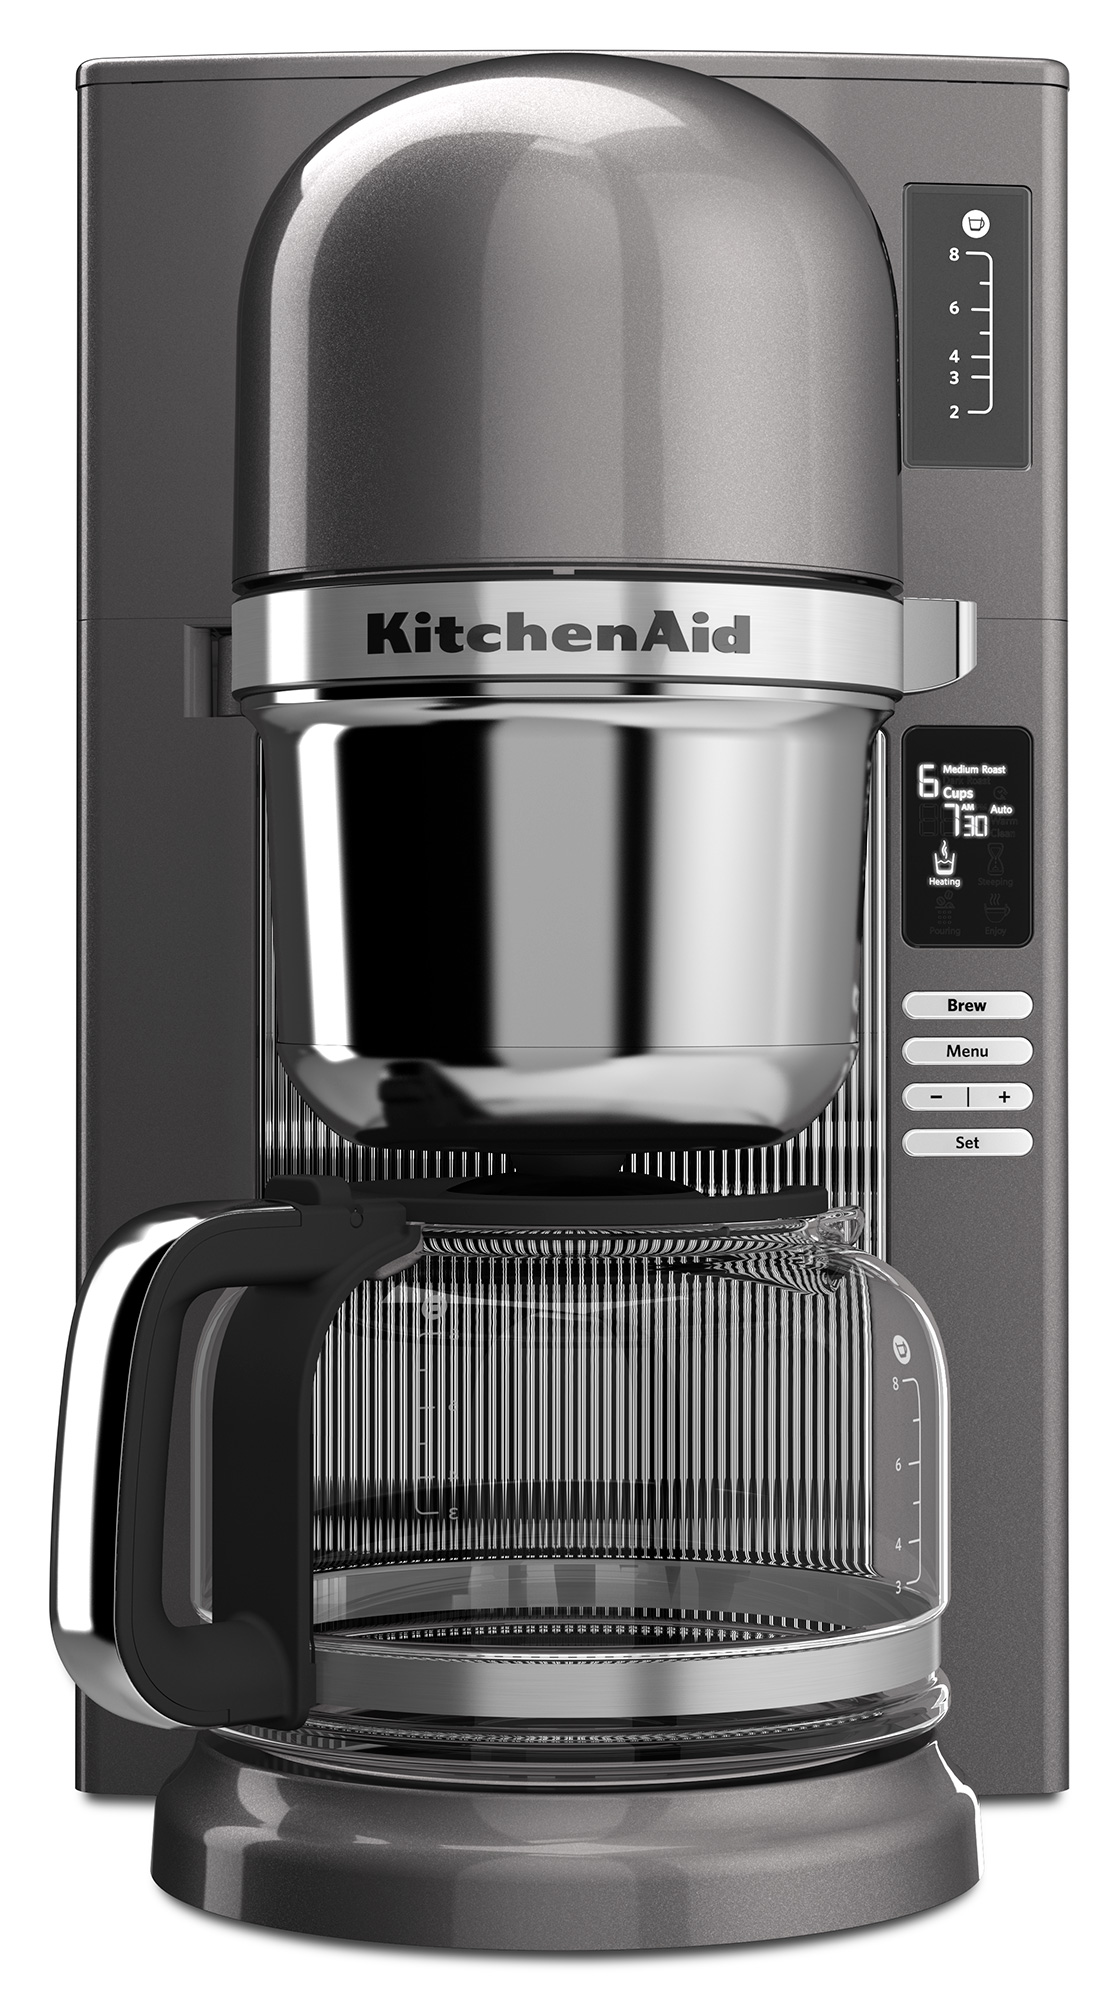 http://www.multivu.com/players/English/7315351-kitchenaid-new-high-performance-coffee-and-espresso-offerings/gallery/image/f91b6822-0462-4f7d-a33a-bb905909444a.HR.jpg